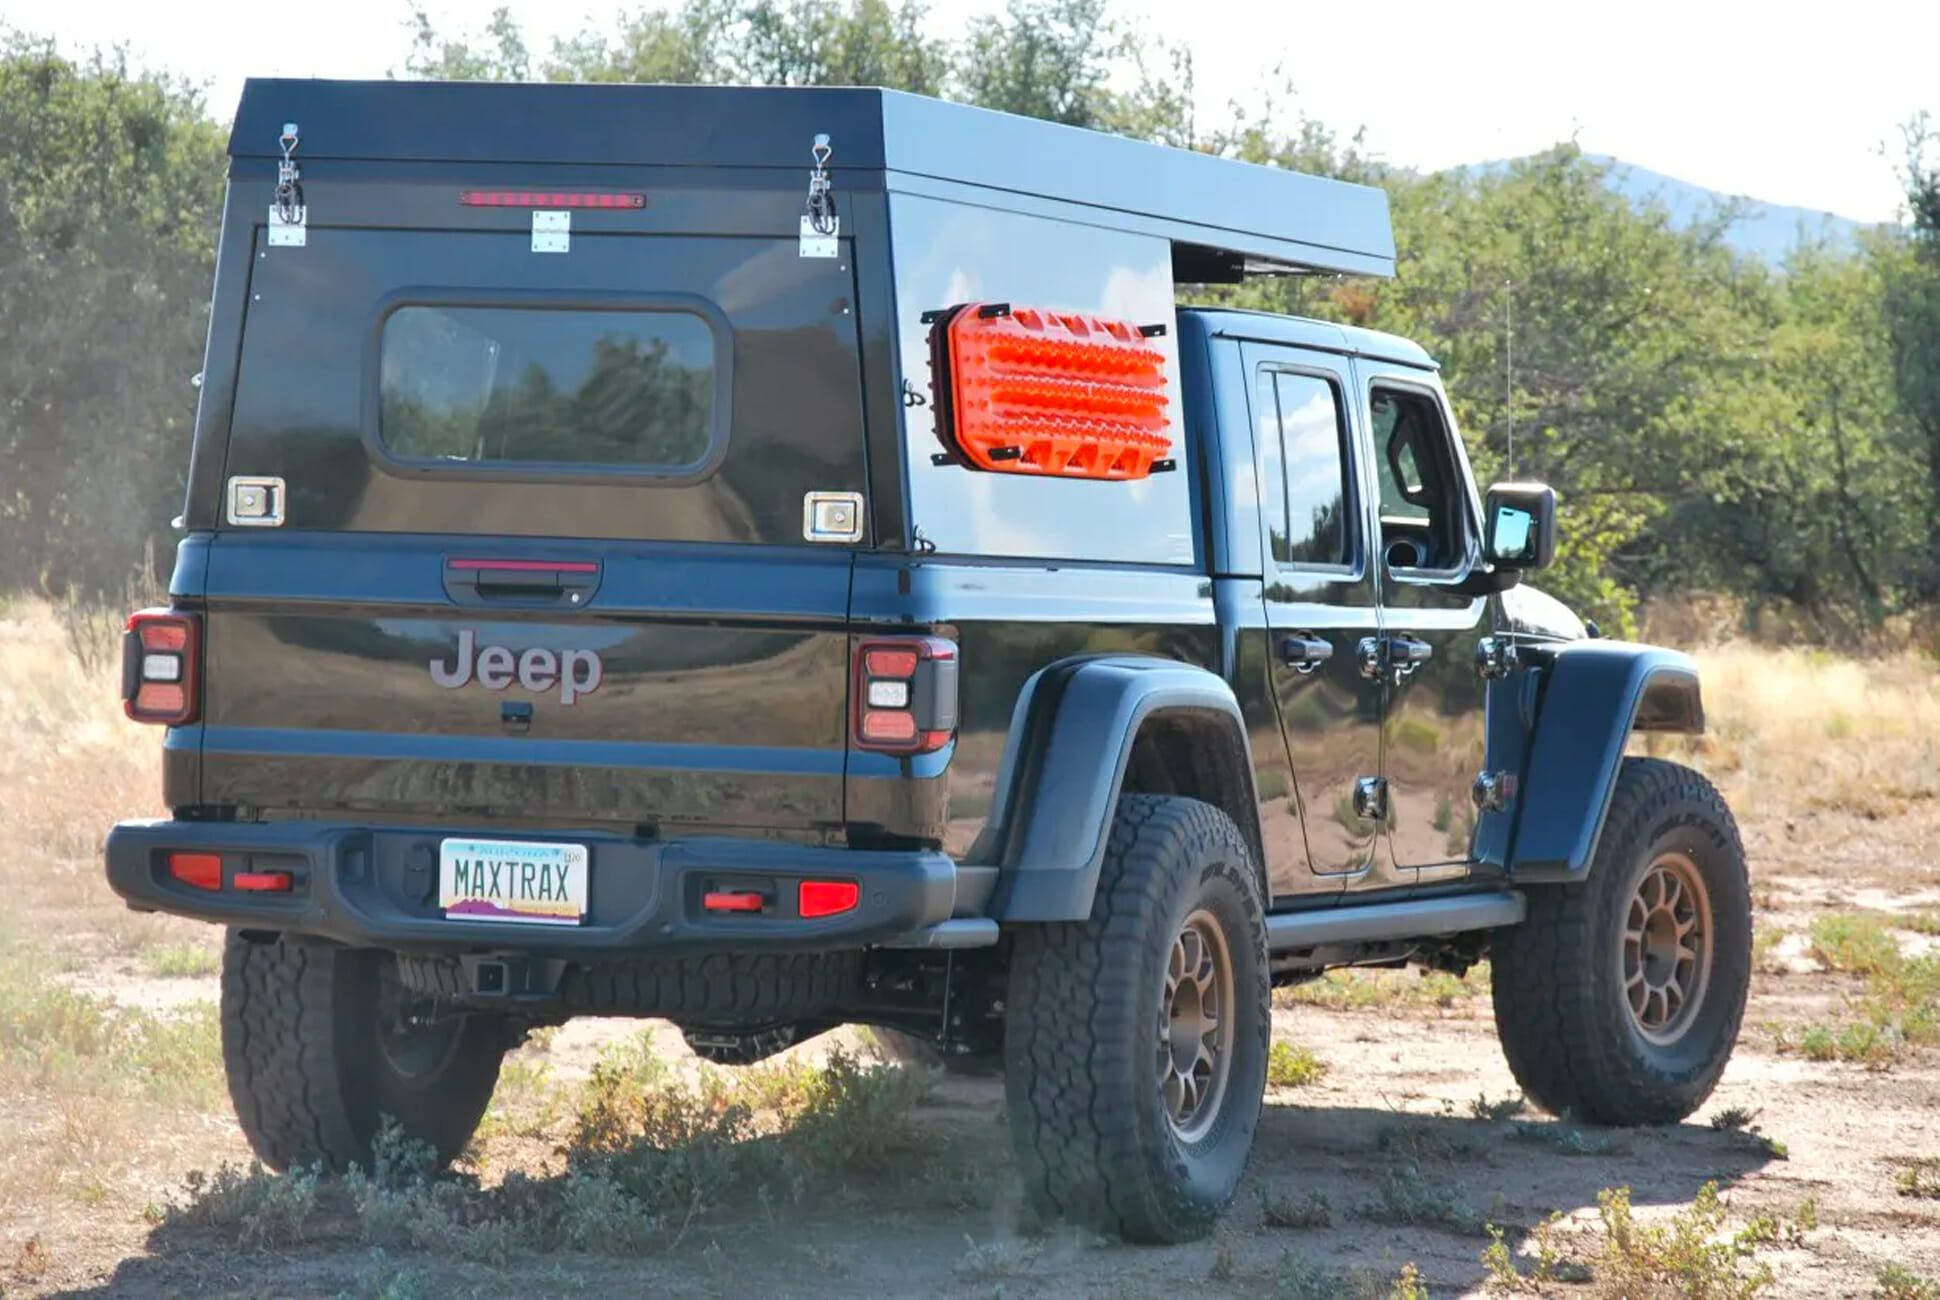 Turn Your Jeep Gladiator Into An Overlanding Camper With